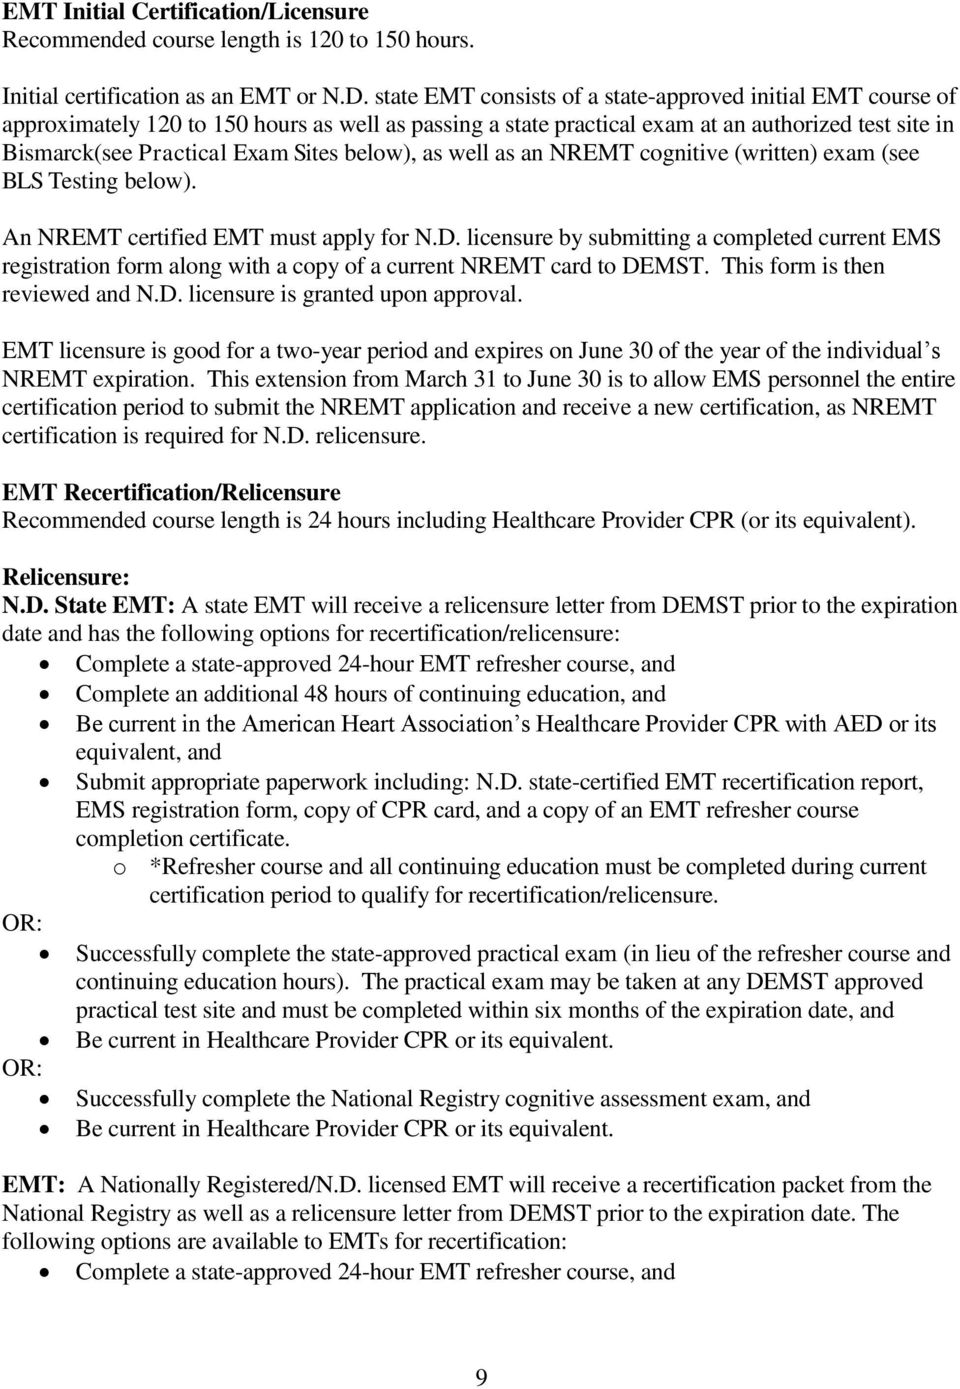 below), as well as an NREMT cognitive (written) exam (see BLS Testing below). An NREMT certified EMT must apply for N.D.